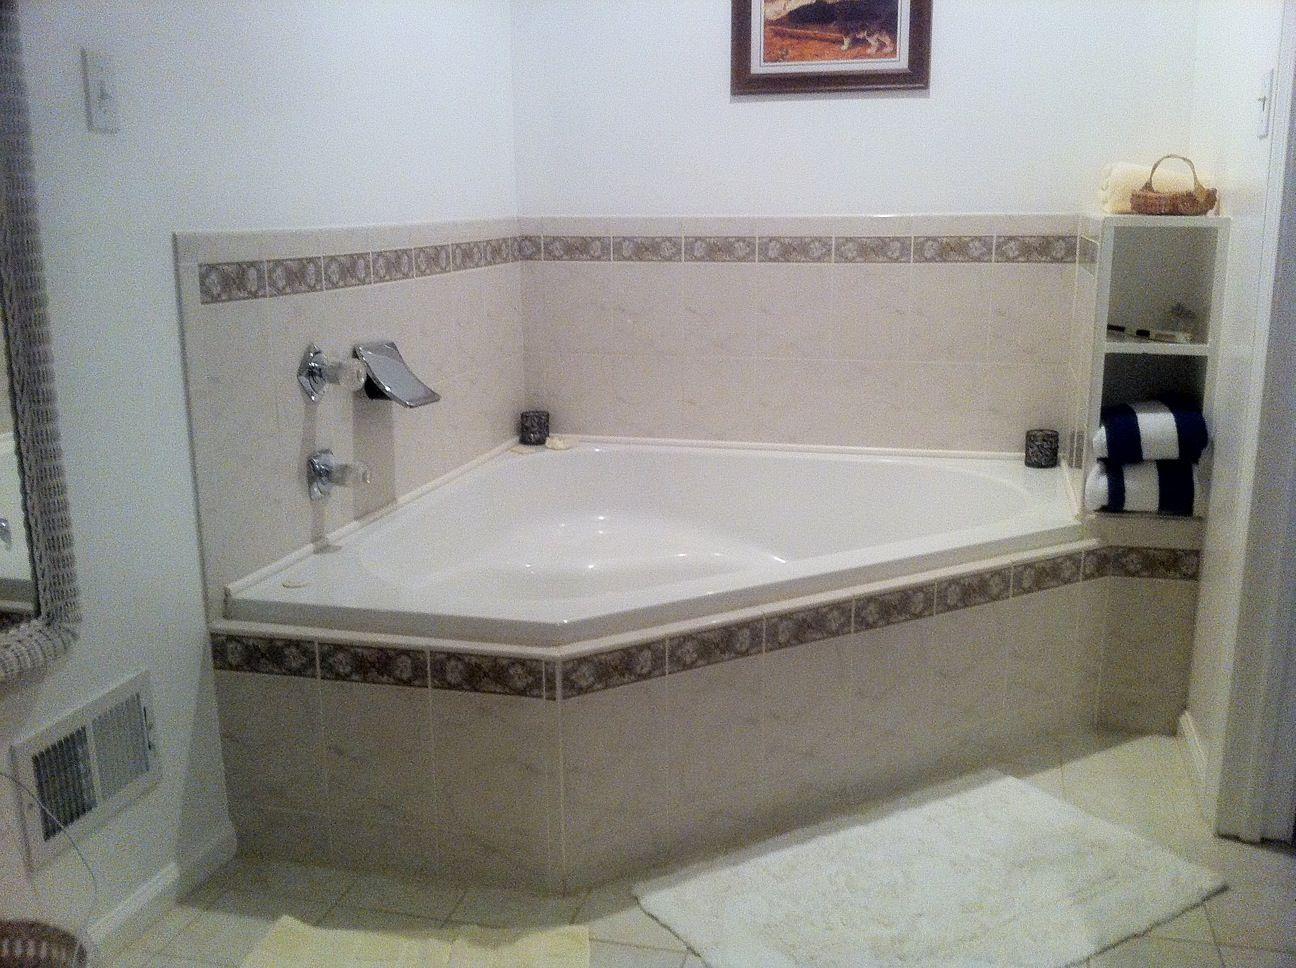 jacuzzi pictures | Heart-Shaped Jacuzzi Tubs and Other Tales From ...